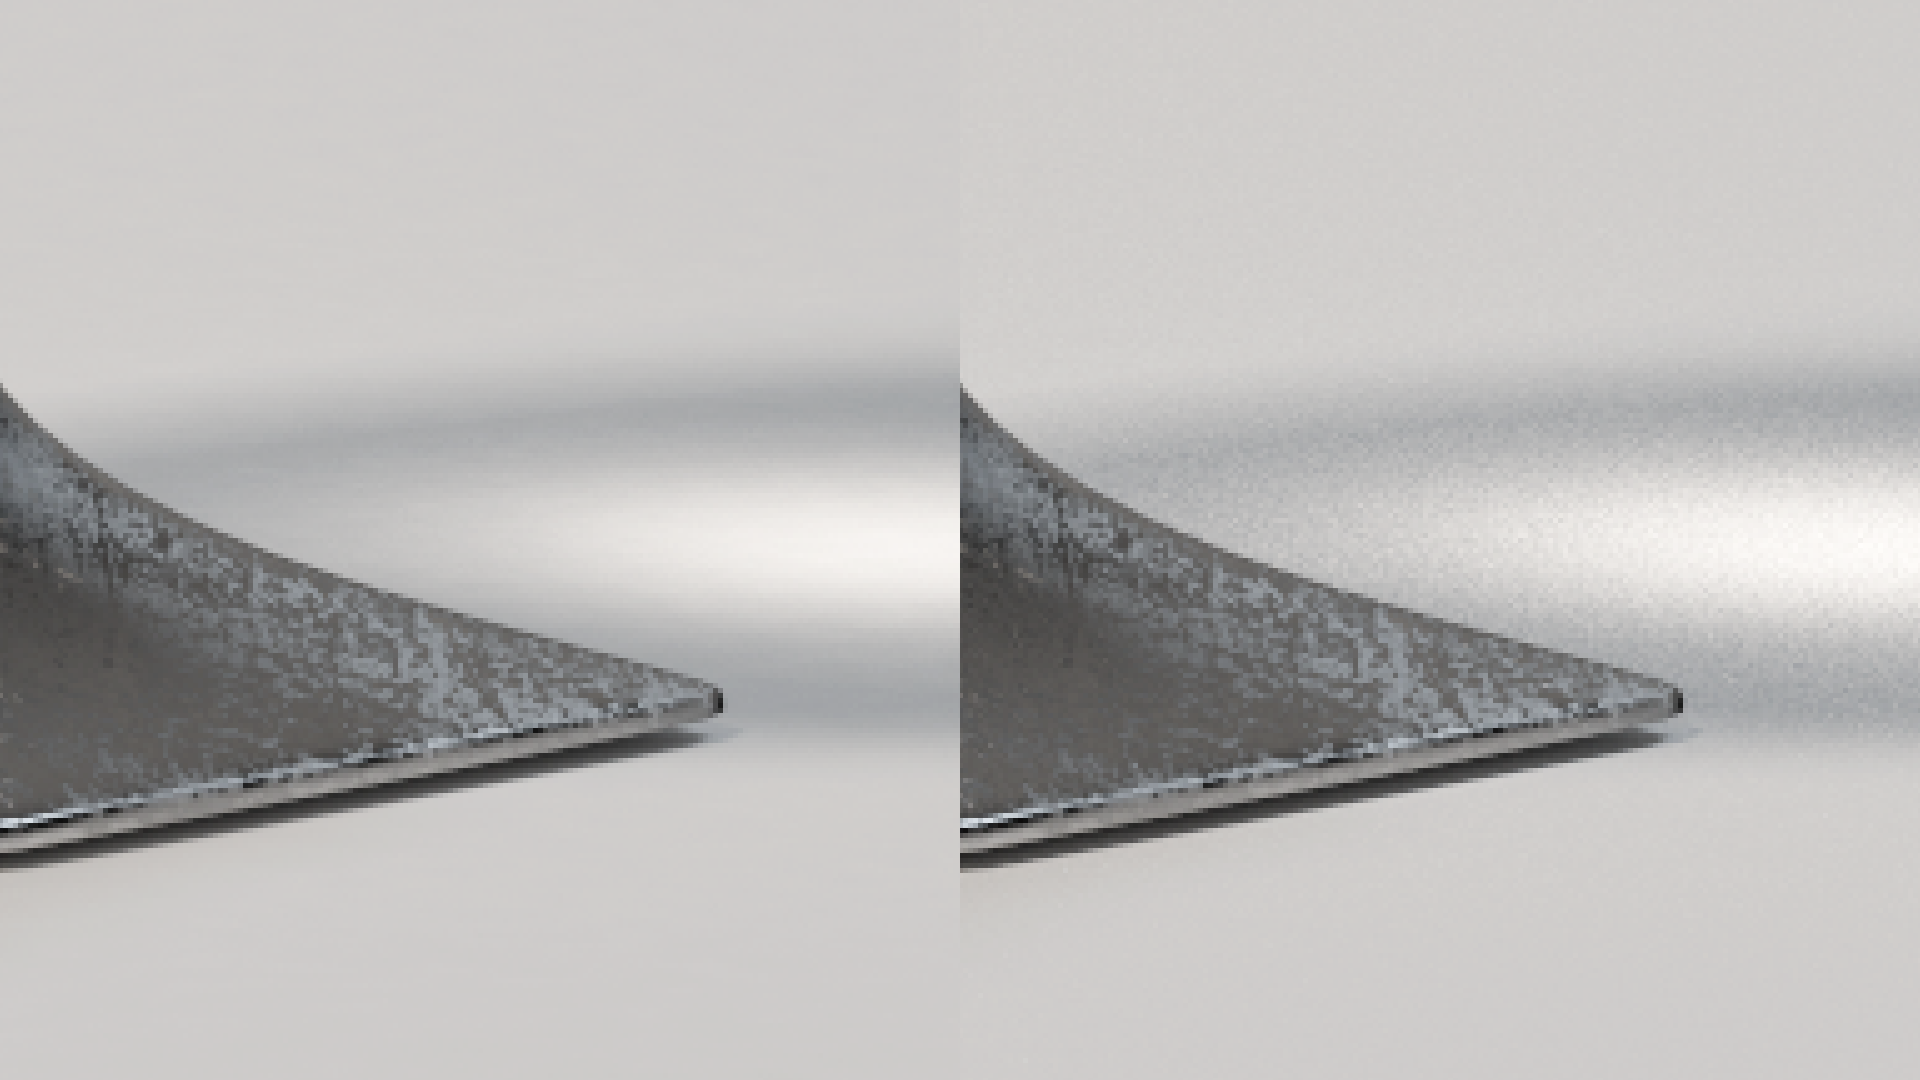 500% crop. Left: converged baseline render. Right: fixed sampling, 5120 samples per pixel, BDPT.